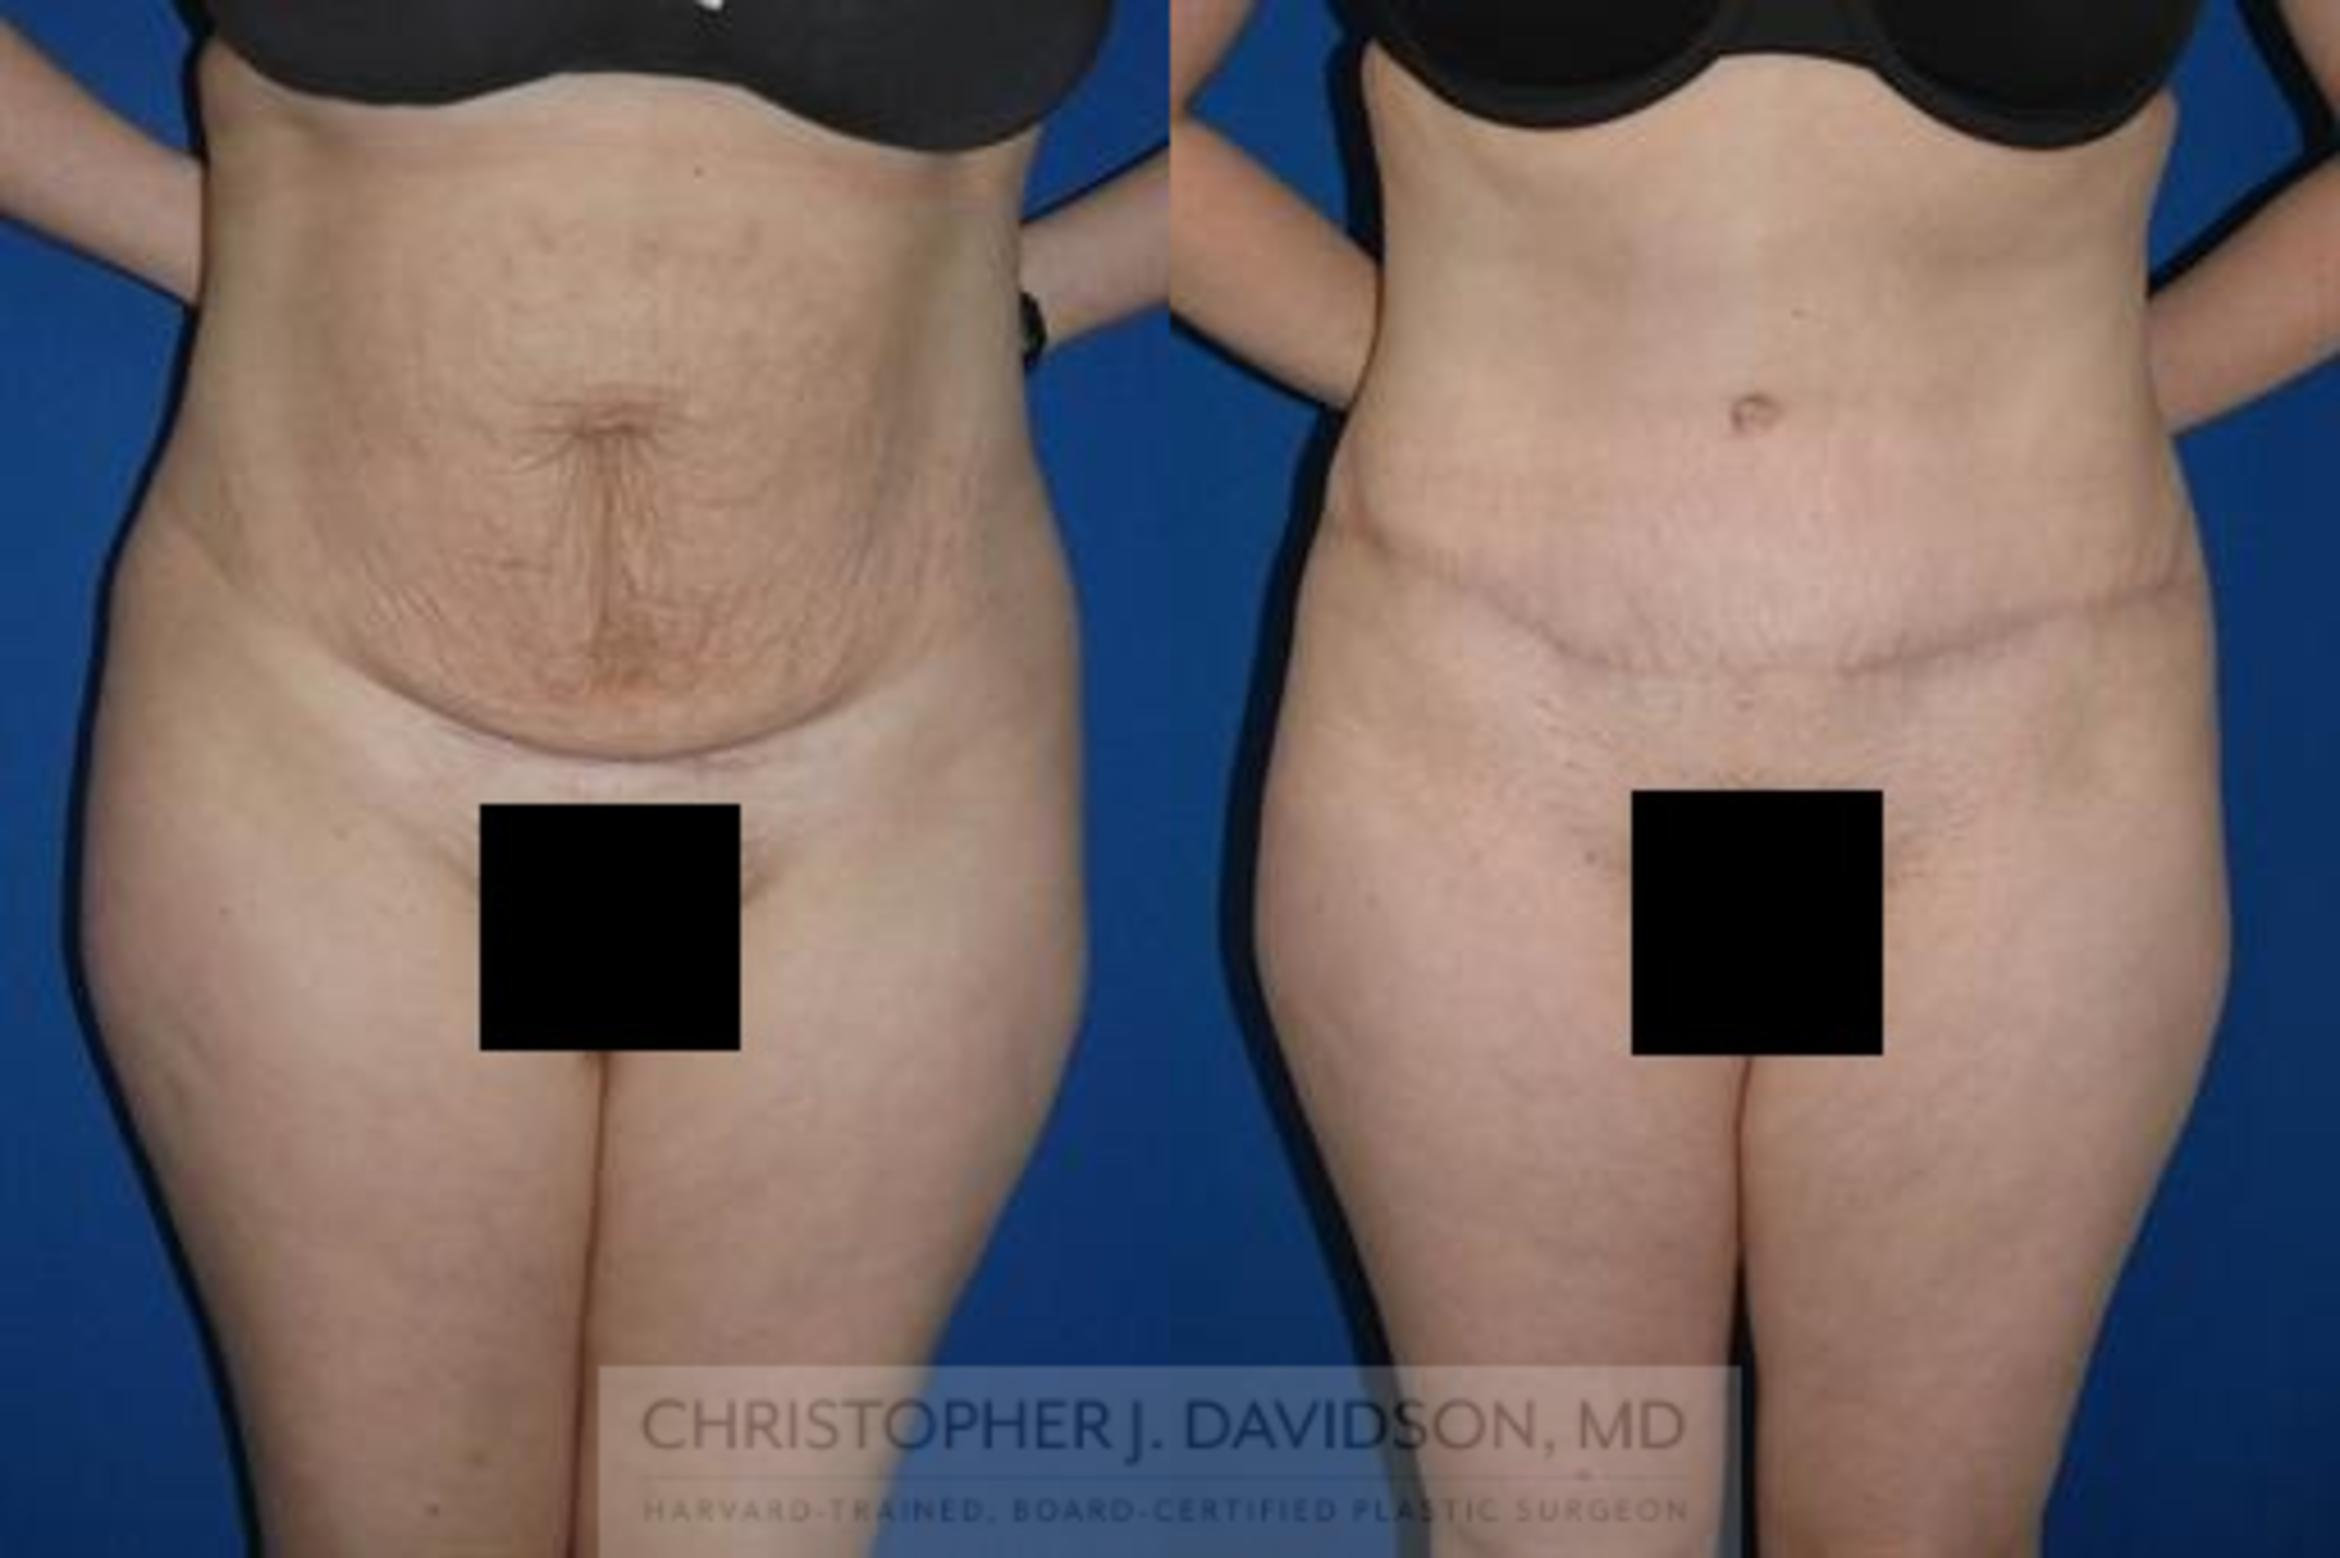 Tummy Tuck (Abdominoplasty) Case 11 Before & After View #1 | Boston, MA | Christopher J. Davidson, MD